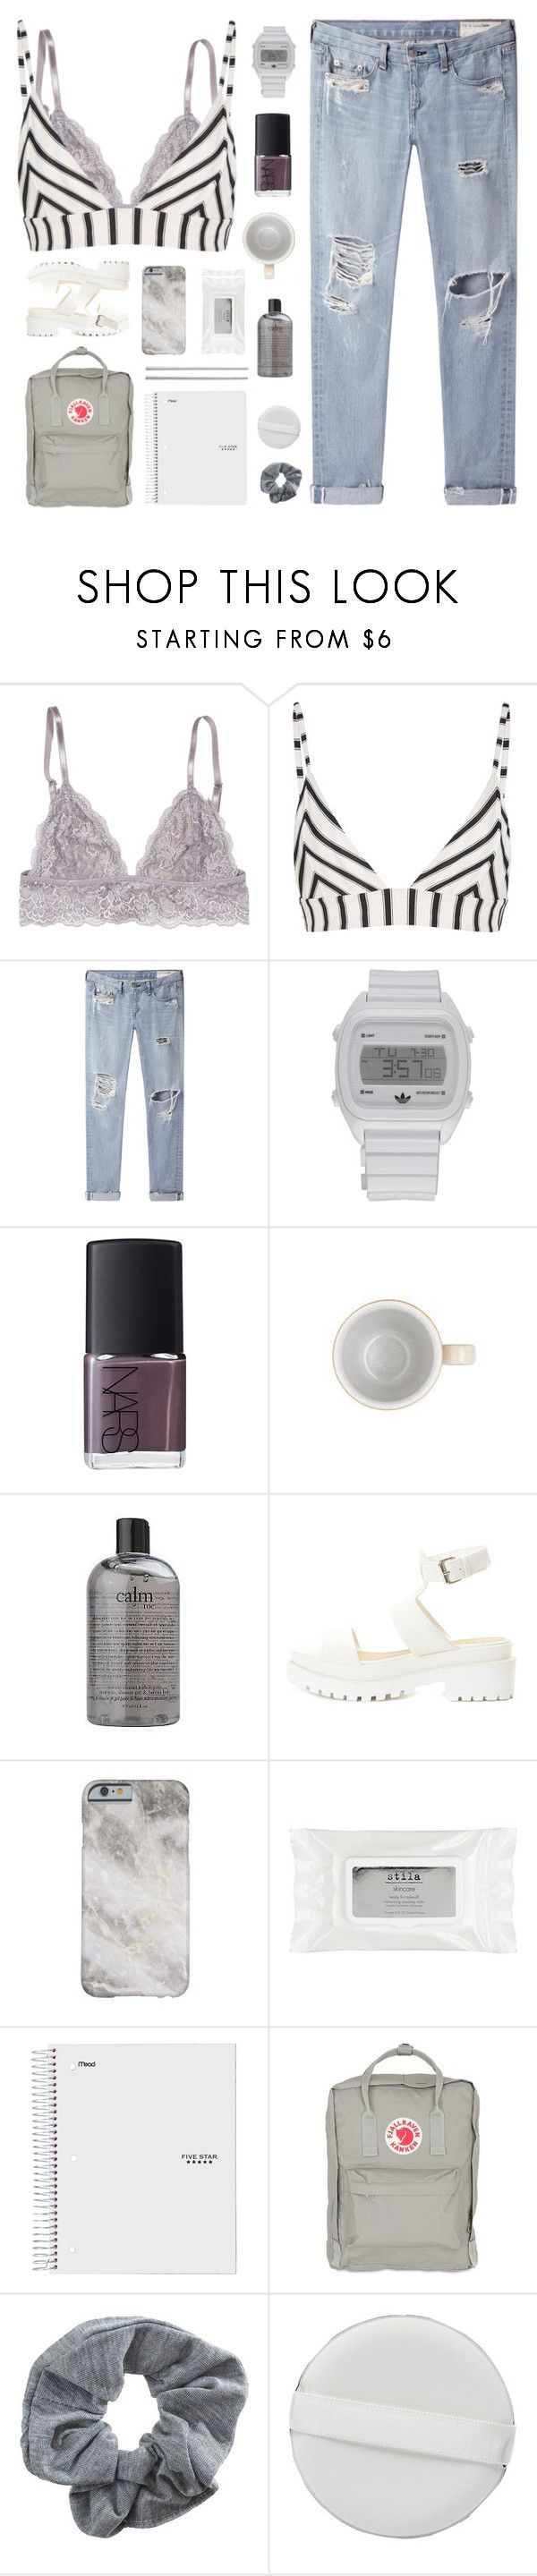 """sing every song in vain of your name"" by junglex ❤ liked on Polyvore featuring Tori Praver Swimwear, rag & bone/JEAN, adidas, NARS Cosmetics, Denby, philosophy, Stila, Fjällräven, Topshop and Williams-Sonoma"